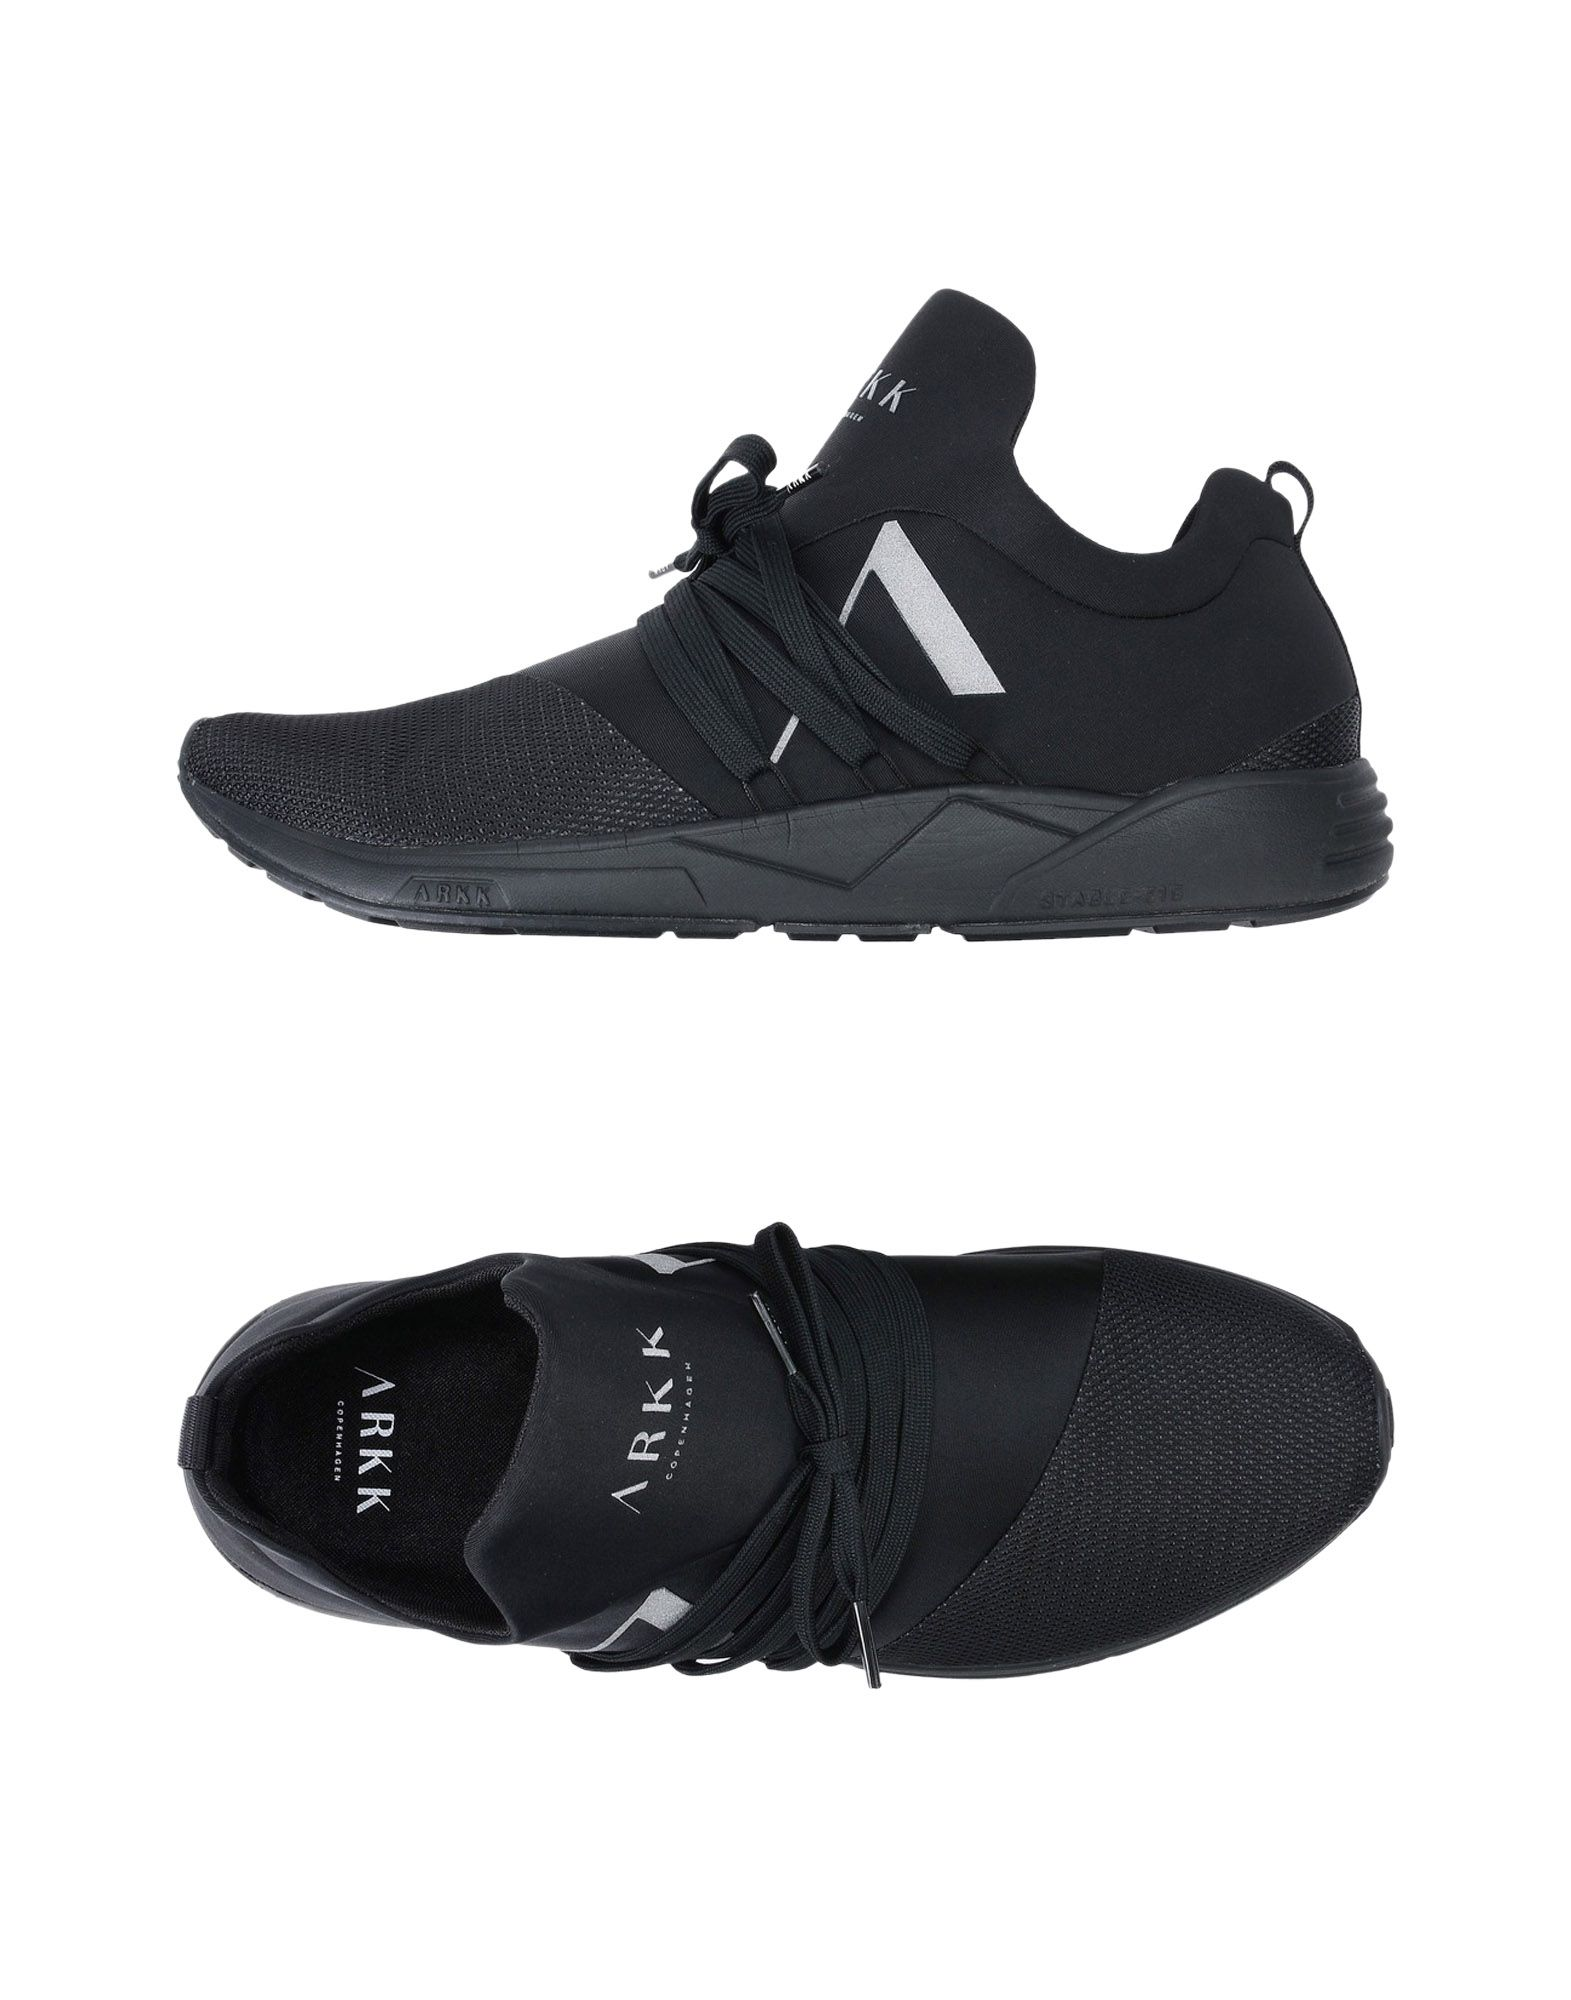 Sneakers Arkk Copenhagen Raven Mesh S-E15 Black Reflective - Uomo - 11406269AS